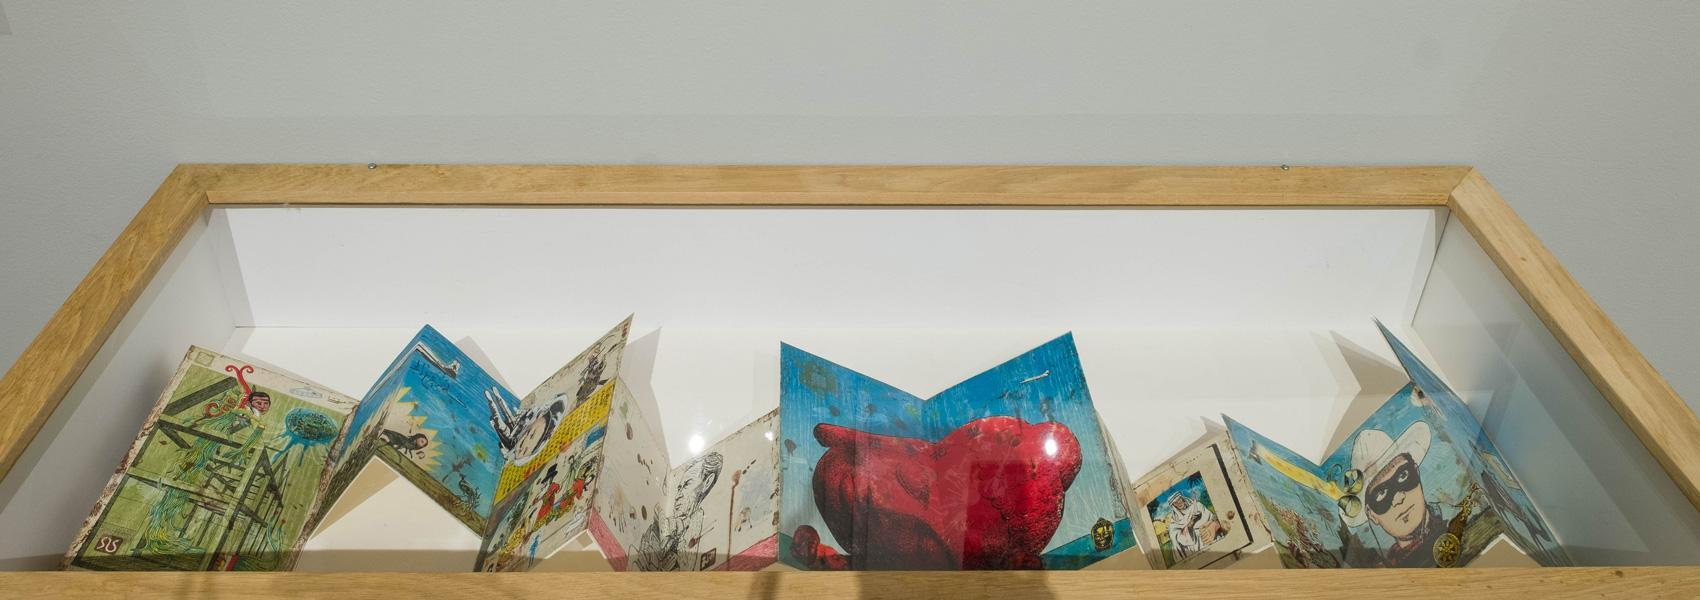 """Image from the exhibition, """"Exploring the Core Curriculum: Individuals and Communities,"""" which appeared at the Haggerty Museum of Art at Marquette University in 2019."""